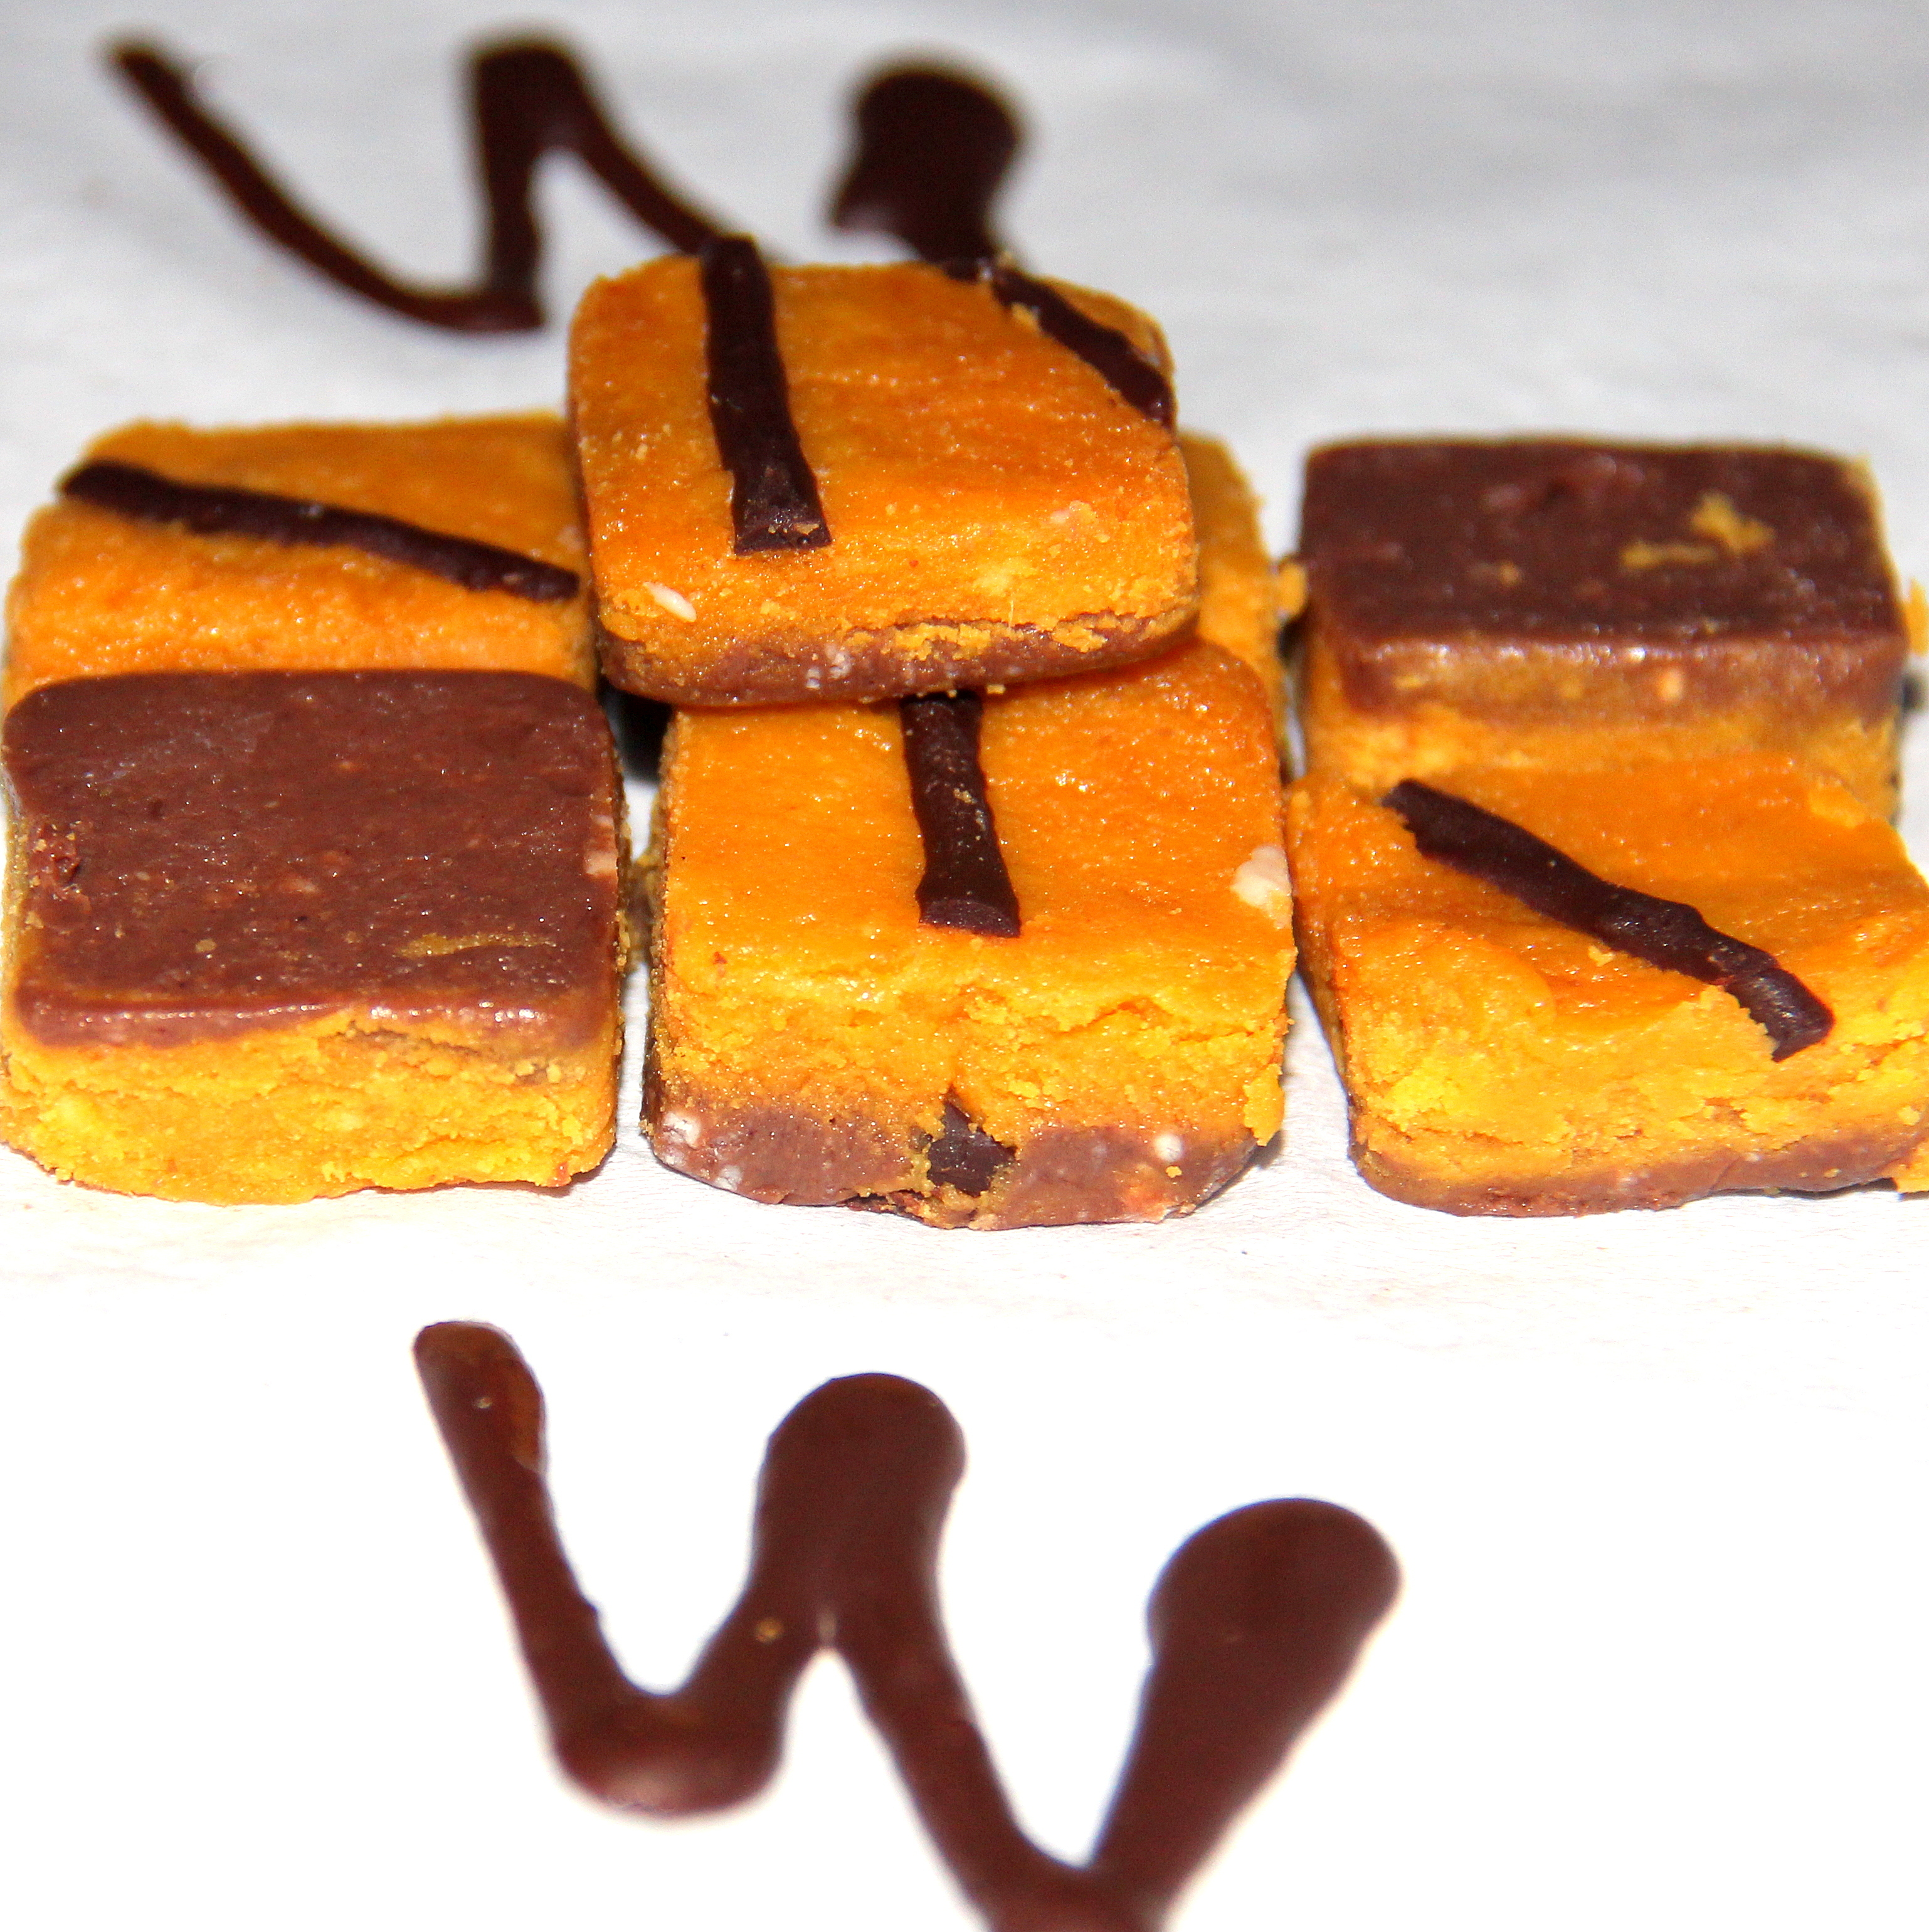 Mango-chocolate fudge